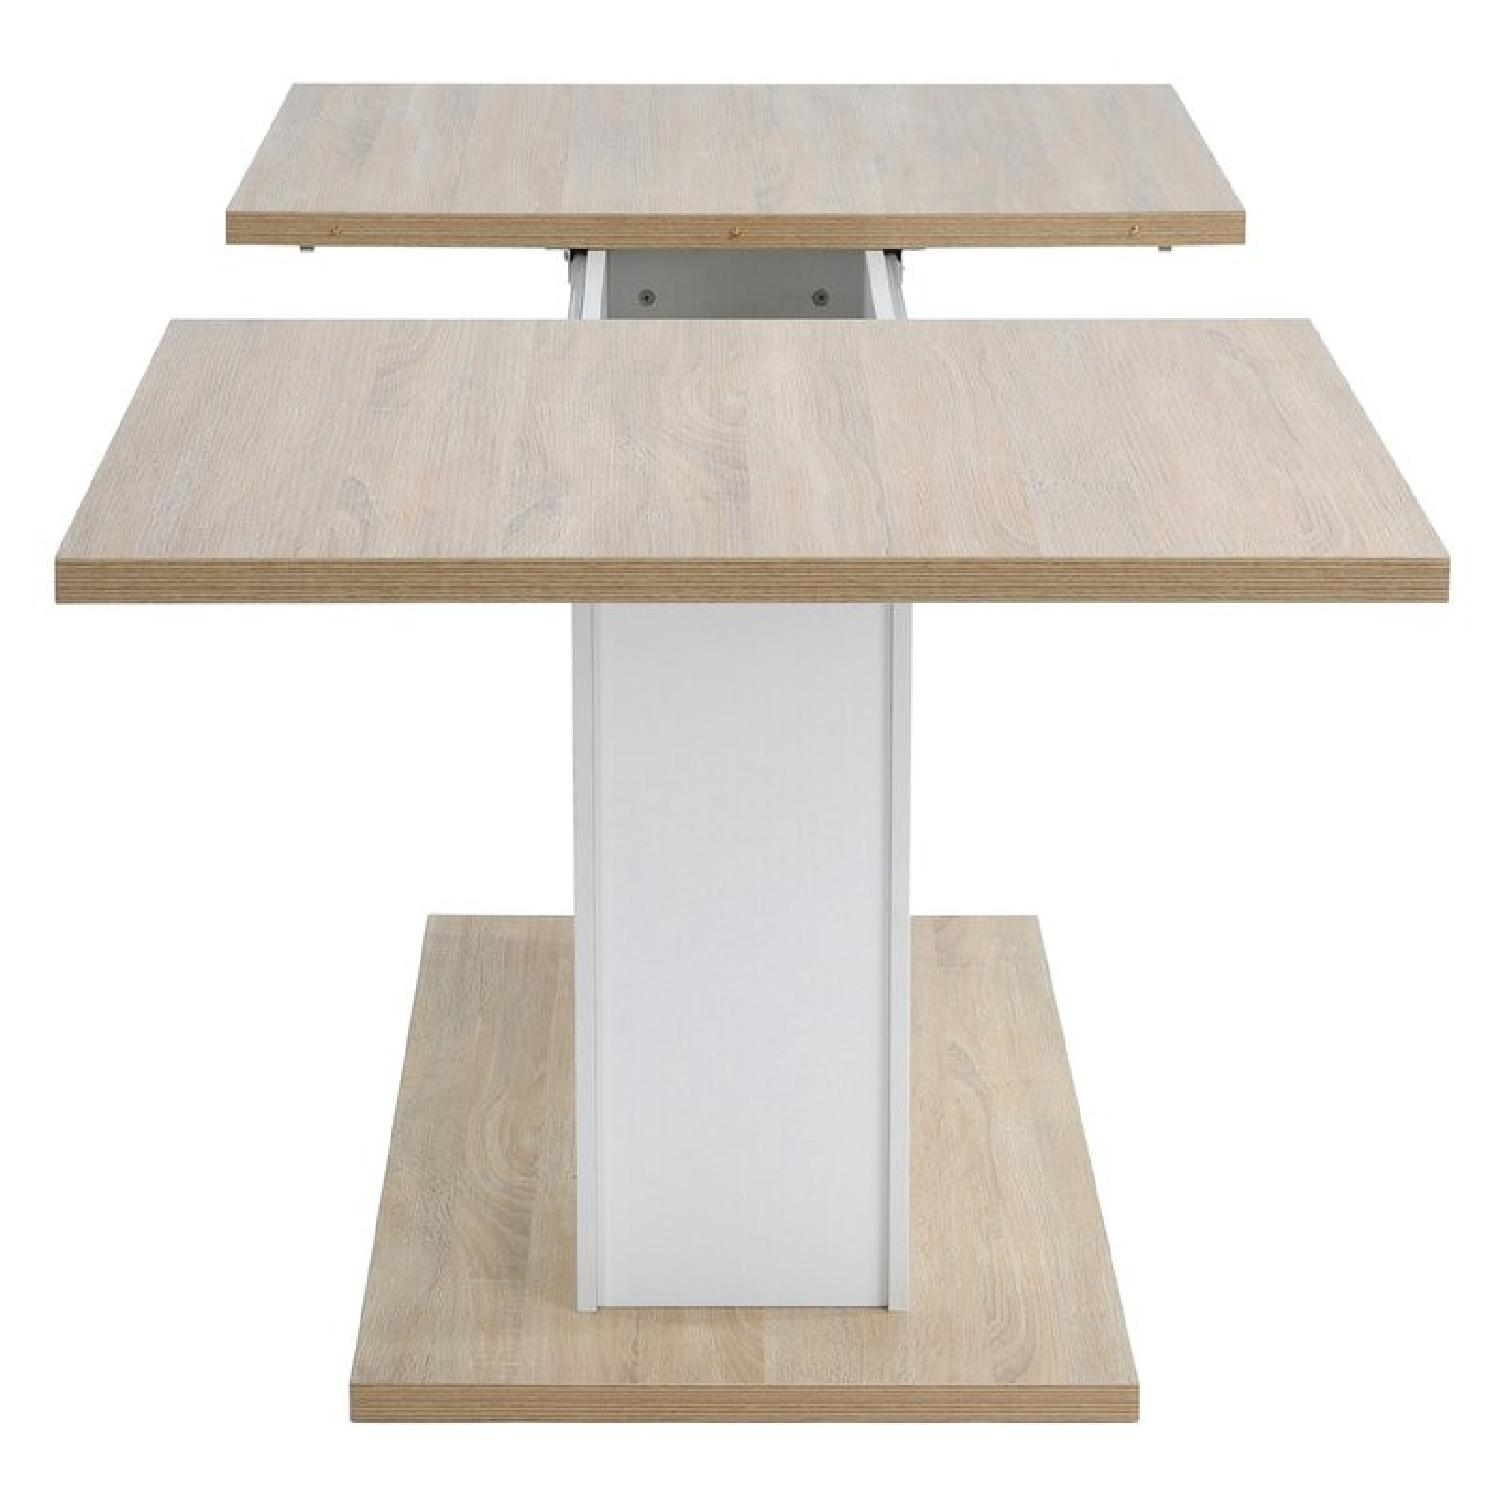 Wayfair Extendable Dining Table (seats up to 8) - image-4